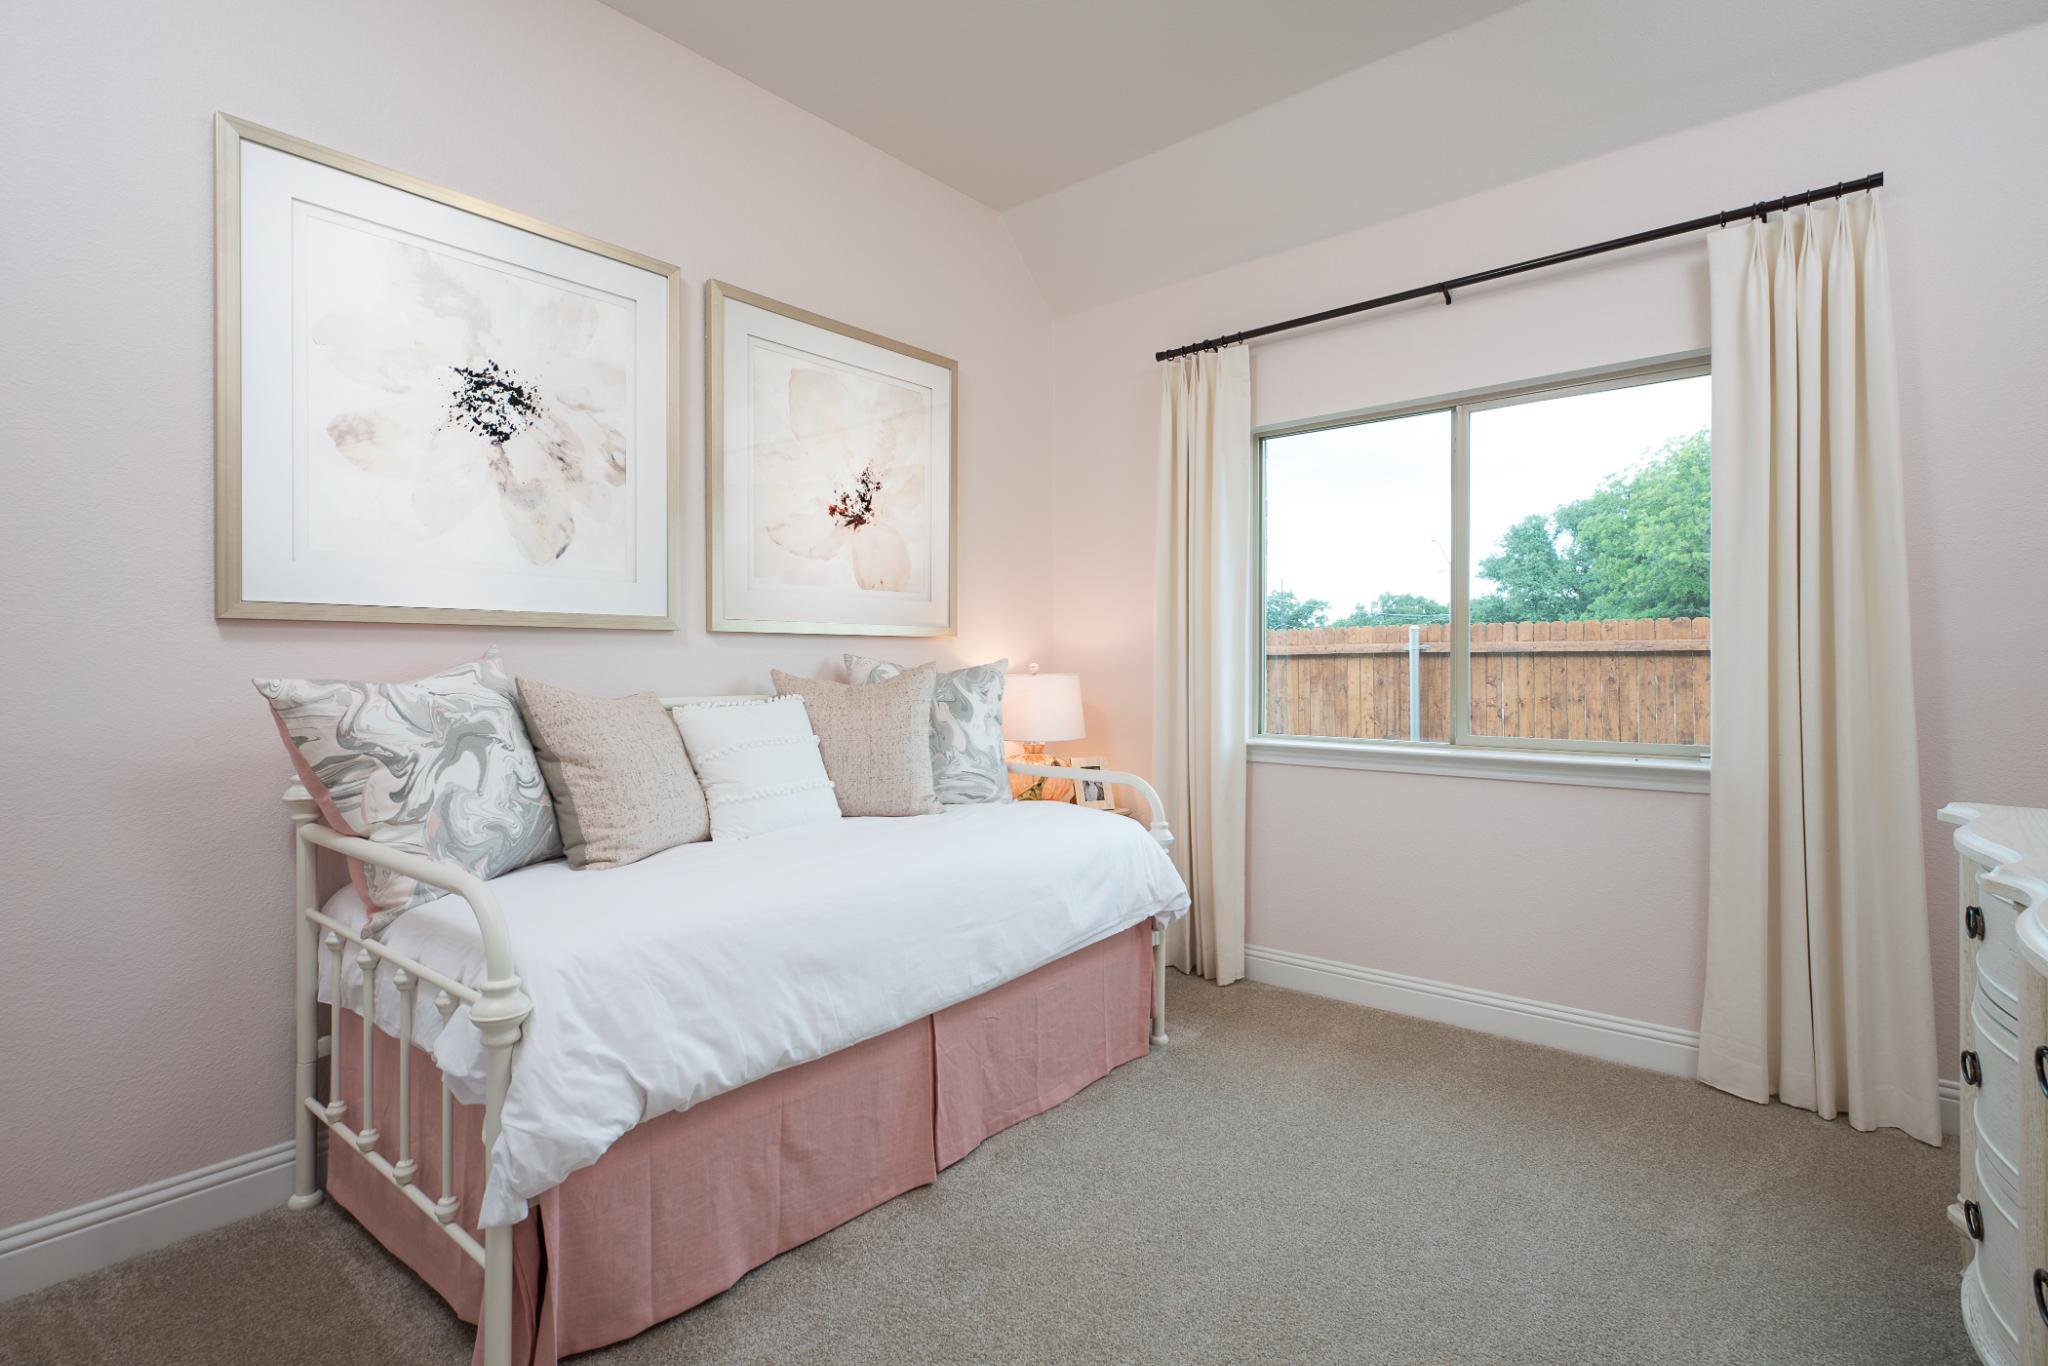 Bedroom featured in the 2267 By Antares Homes in Dallas, TX